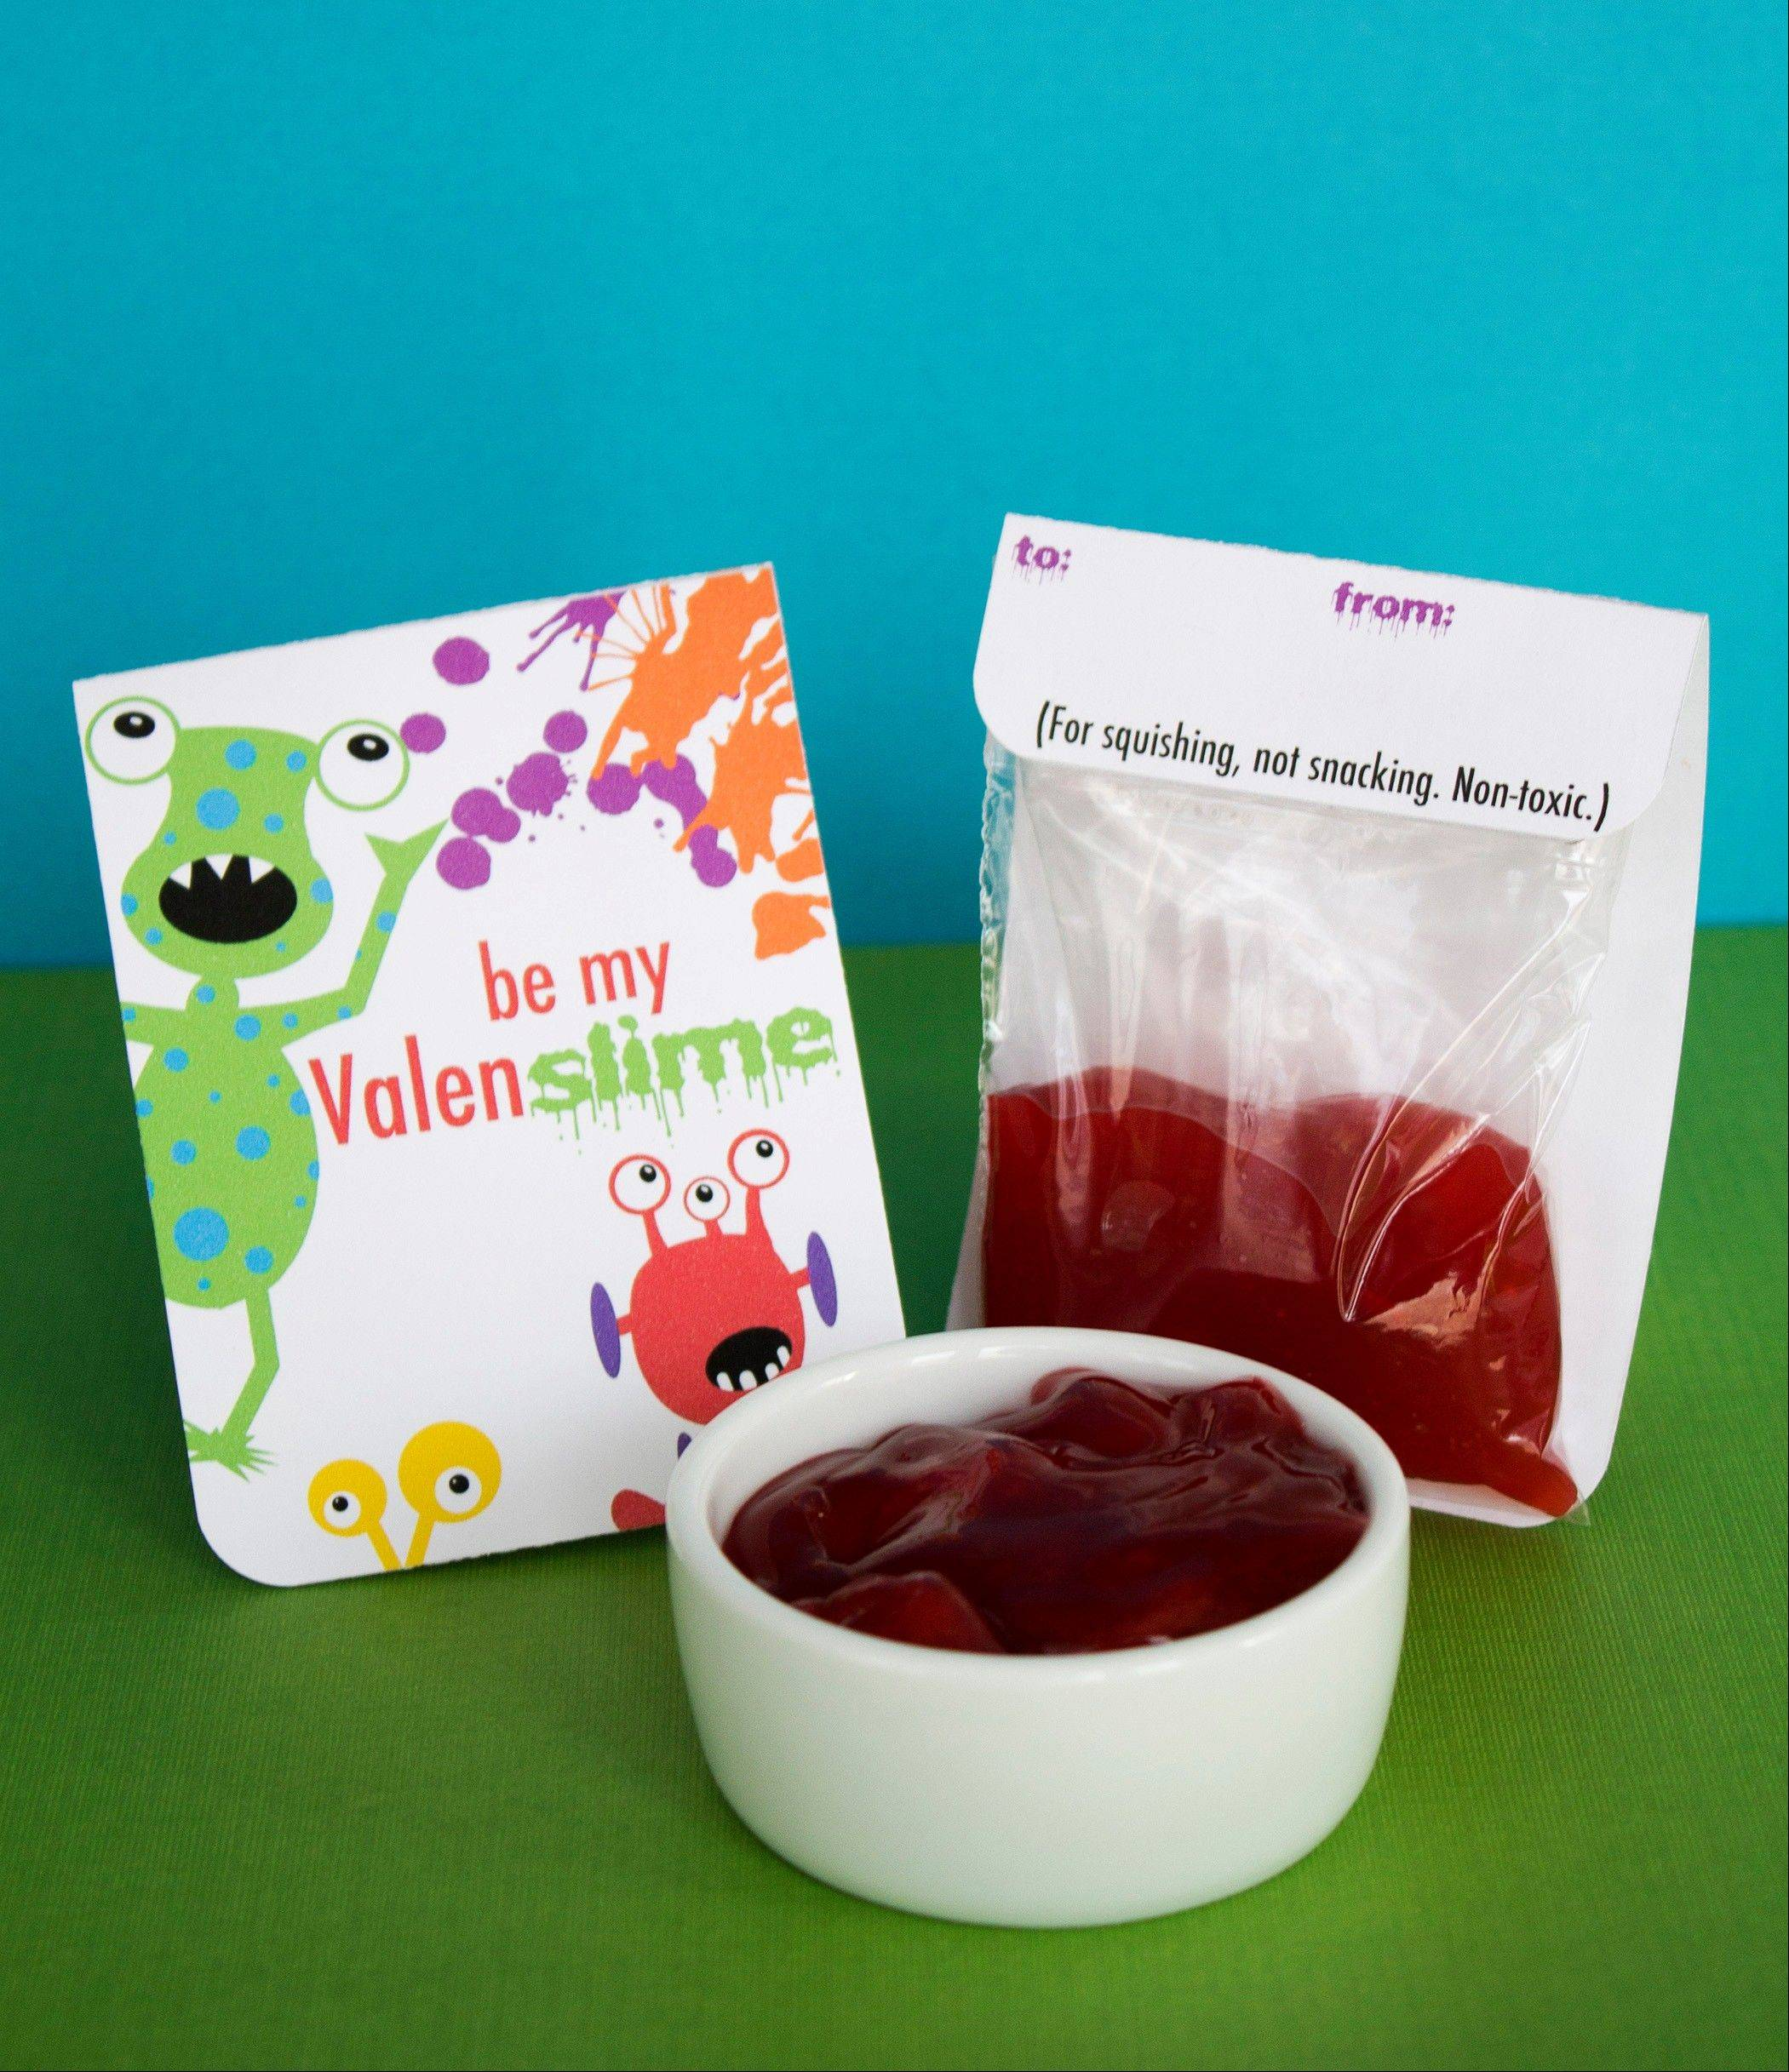 Boys who find hearts and flowers icky will be happy to give their friends this fun alternative to cards and candy.